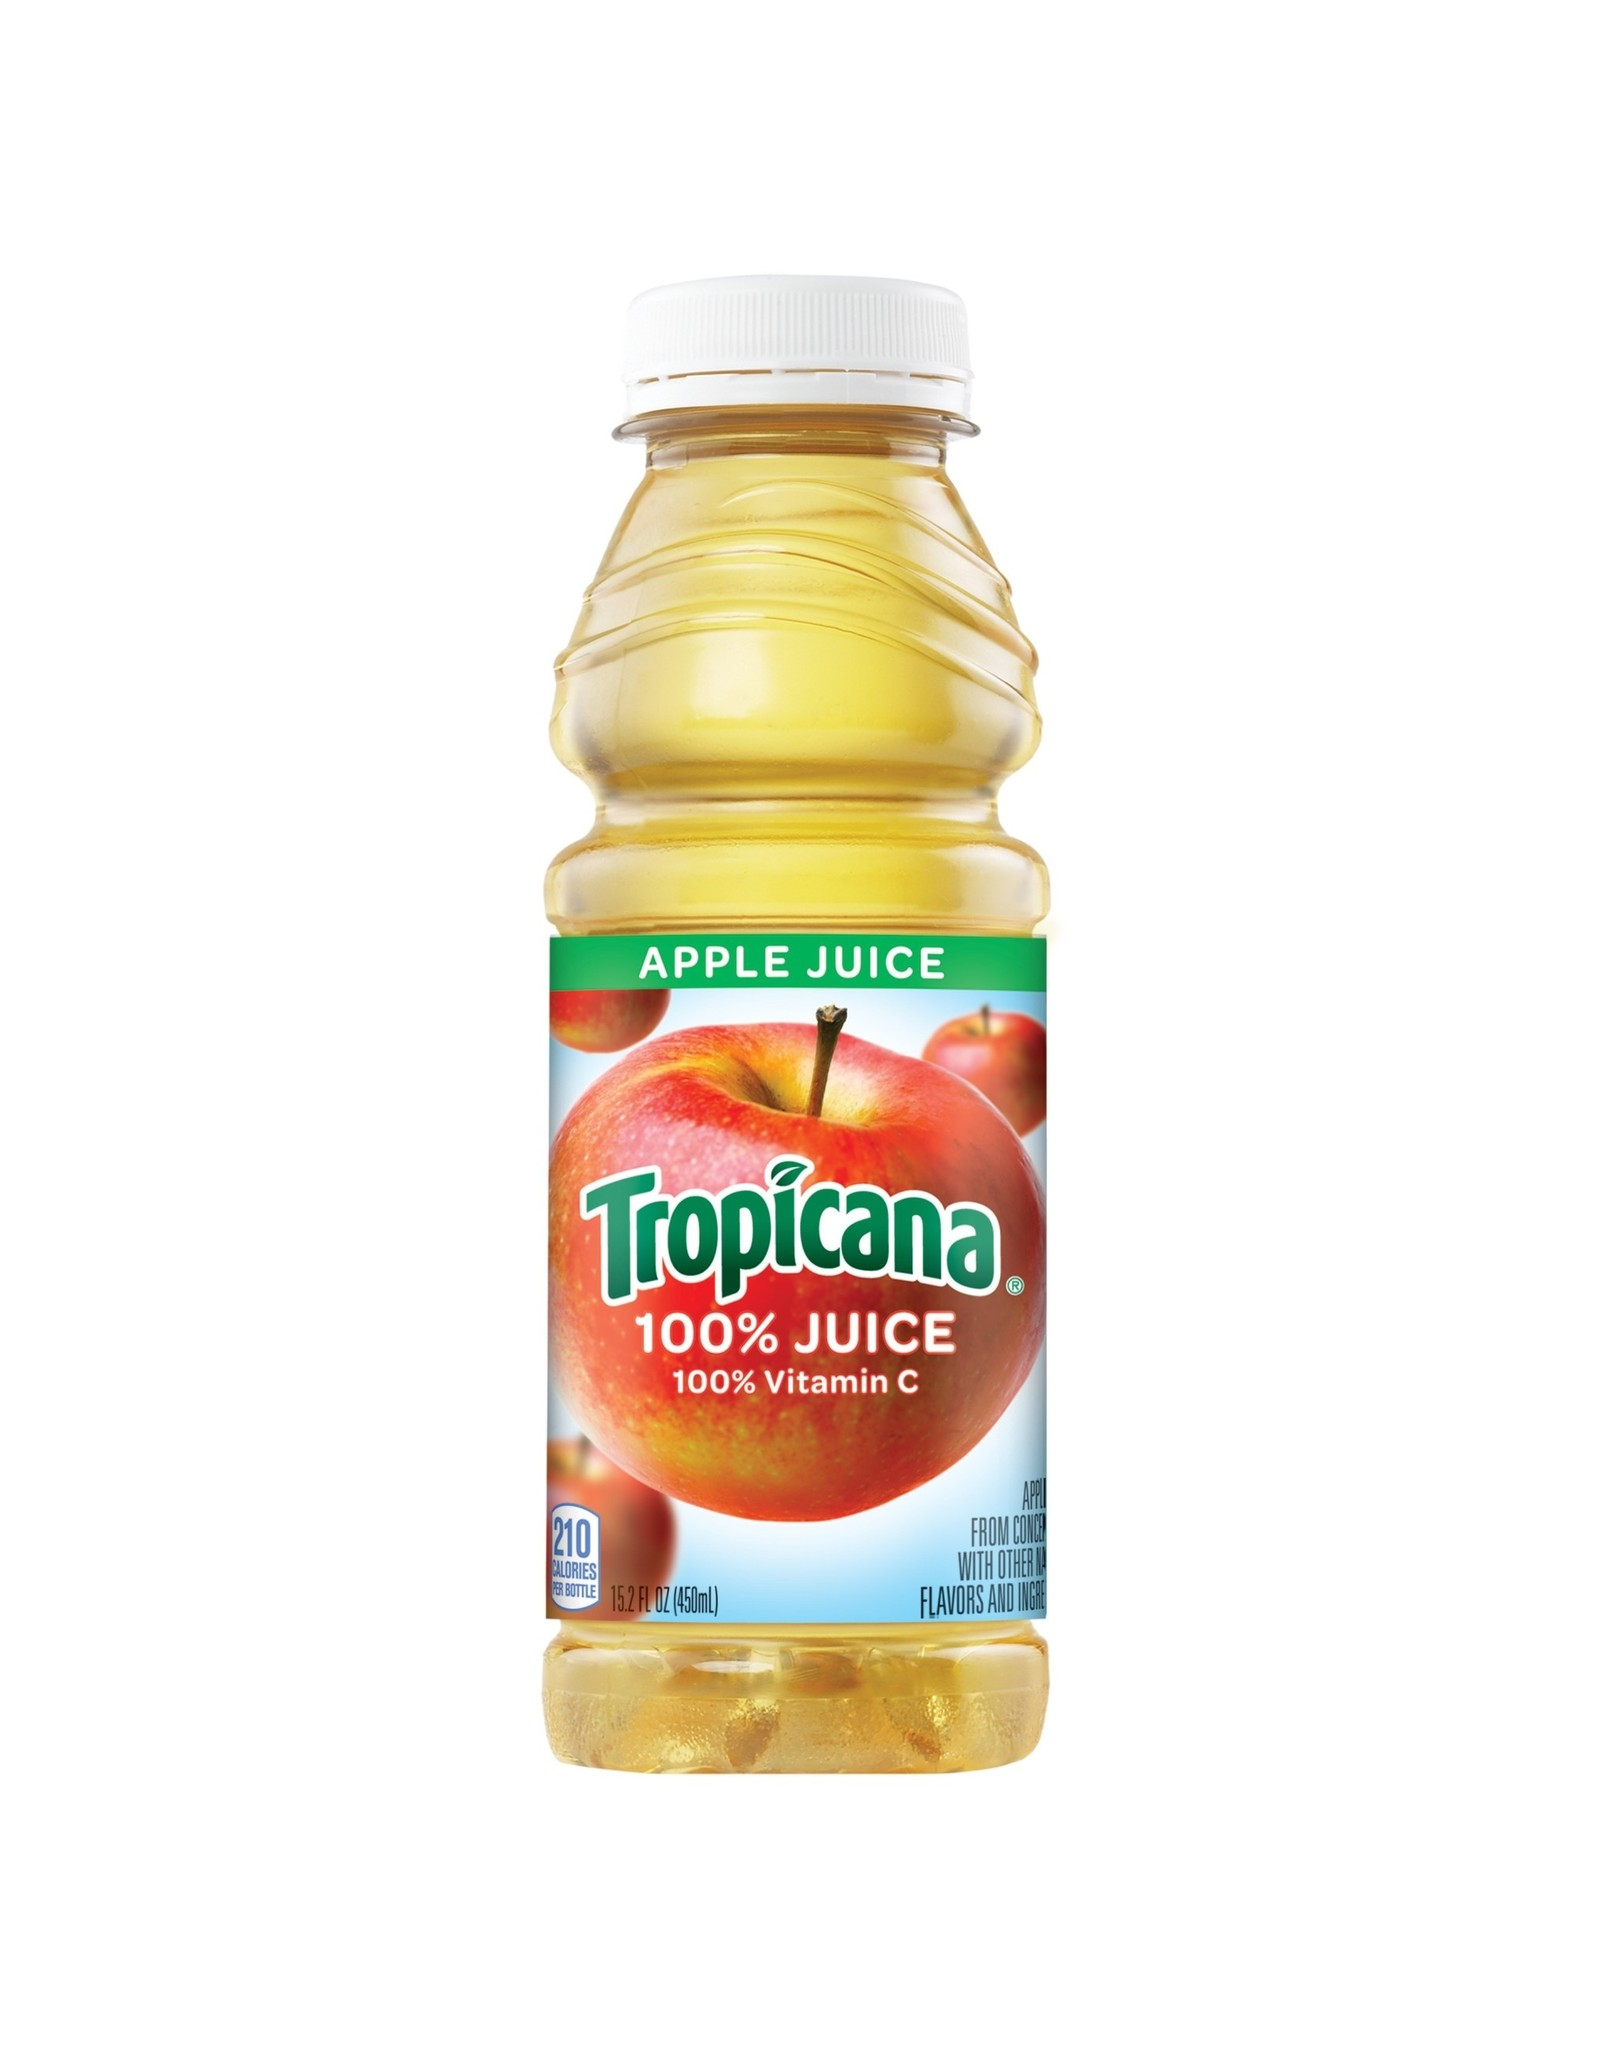 TROPICANA APPLE JUICE 15 OZ